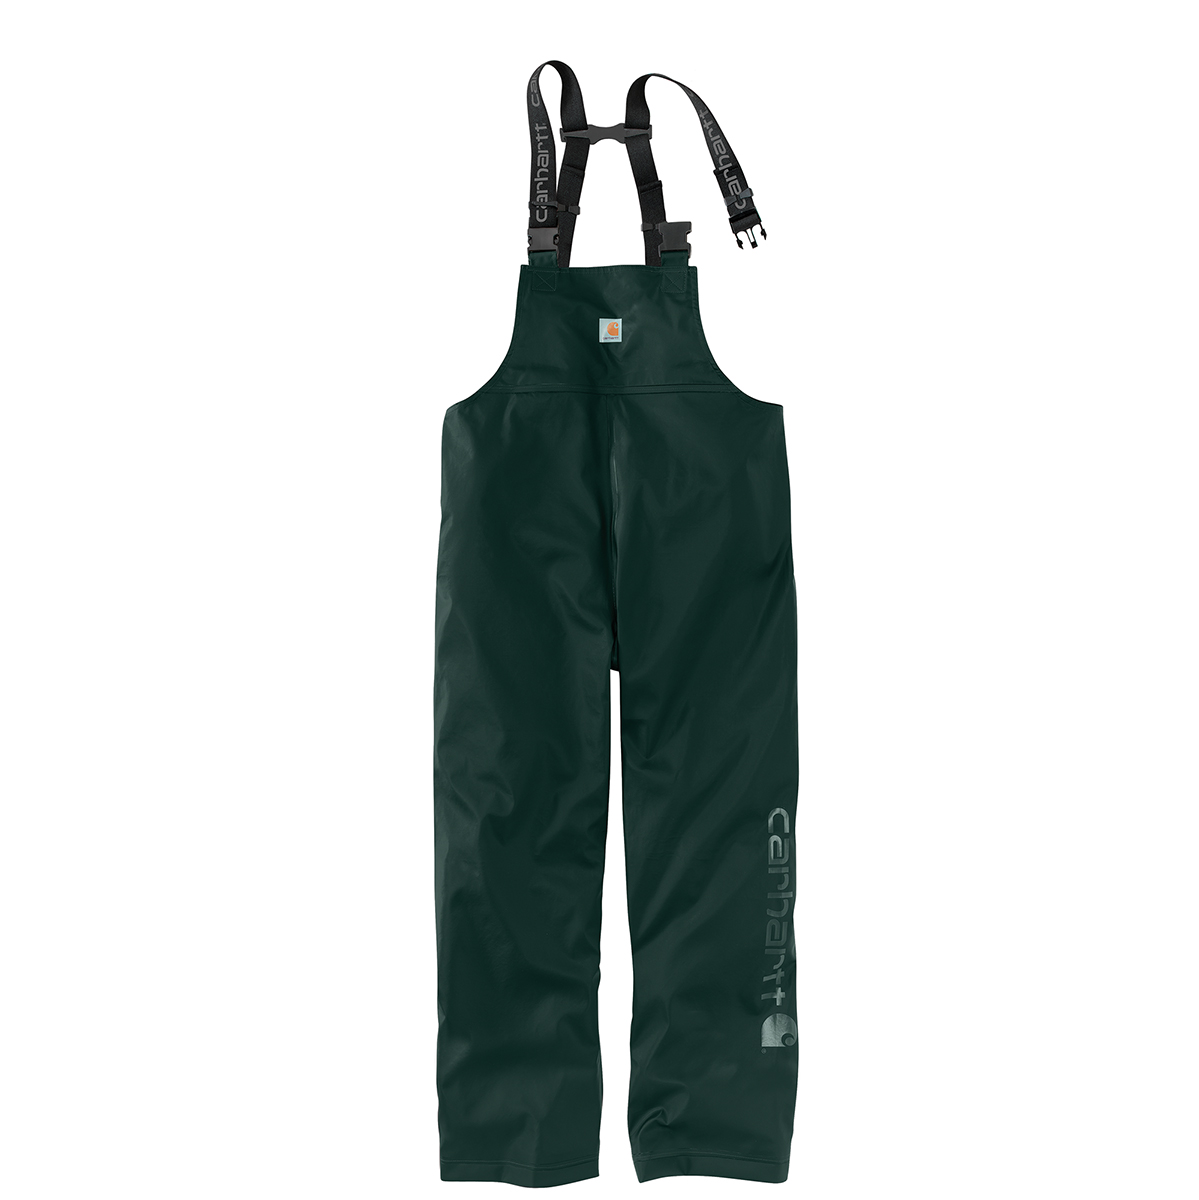 Carhartt Men's Lightweight Waterproof Rainstorm Bib Overalls 103506